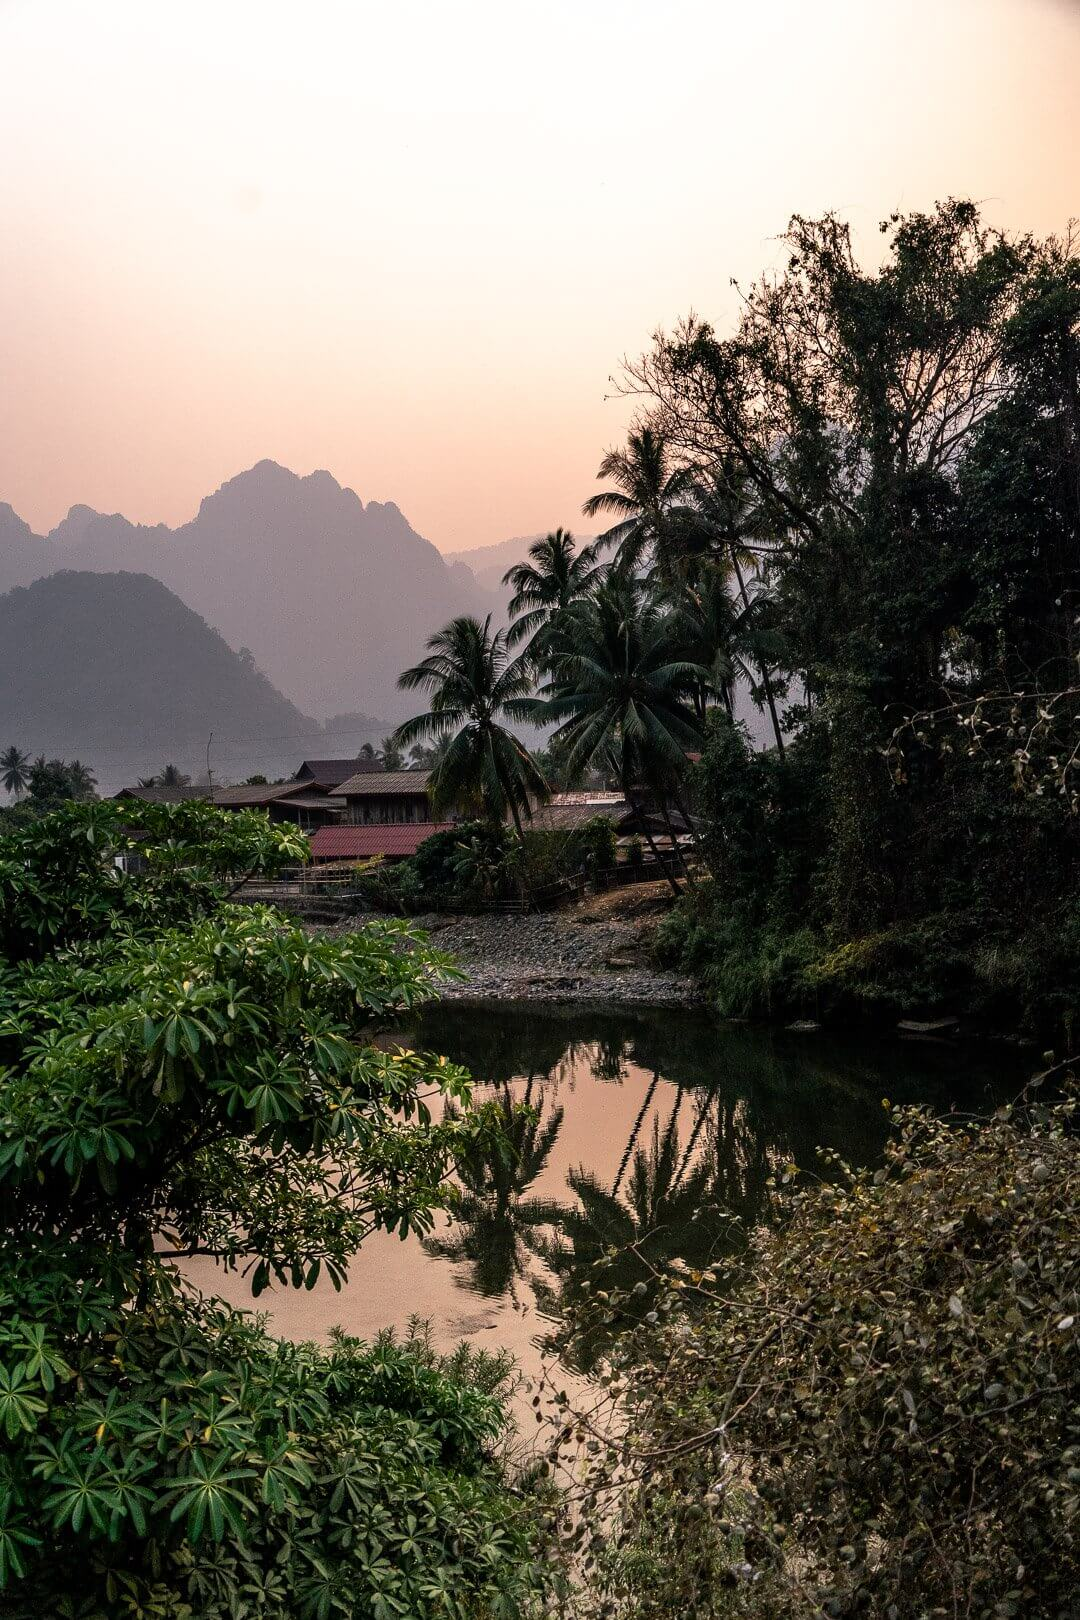 The Pha Tang Village near Vang Vieng in Laos